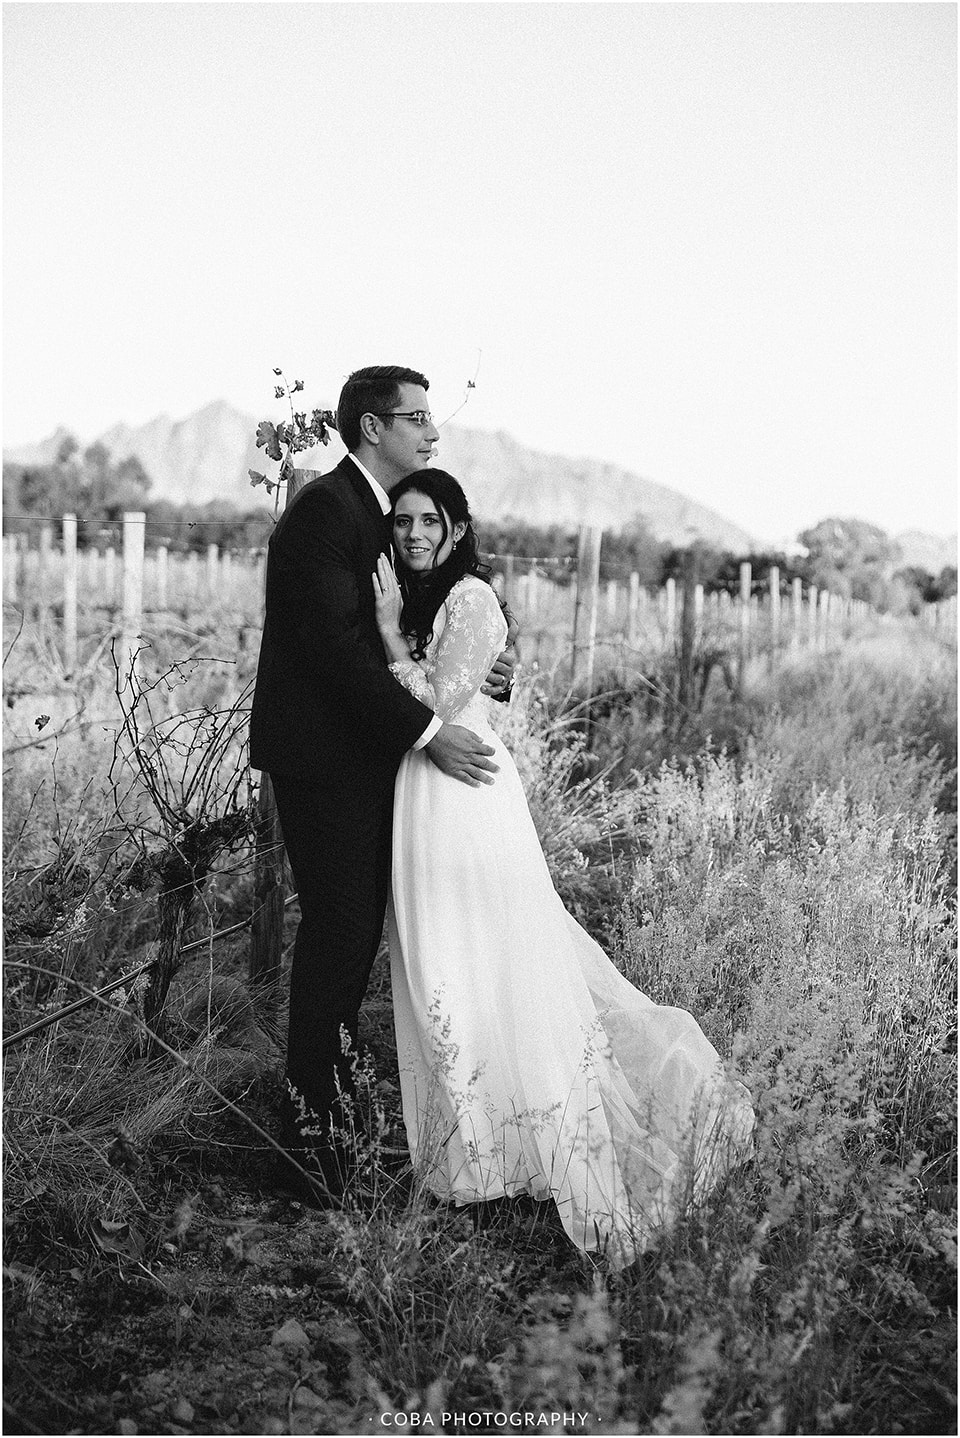 Carlo & Nicolette - Langkloof Roses - Coba Photography (165)